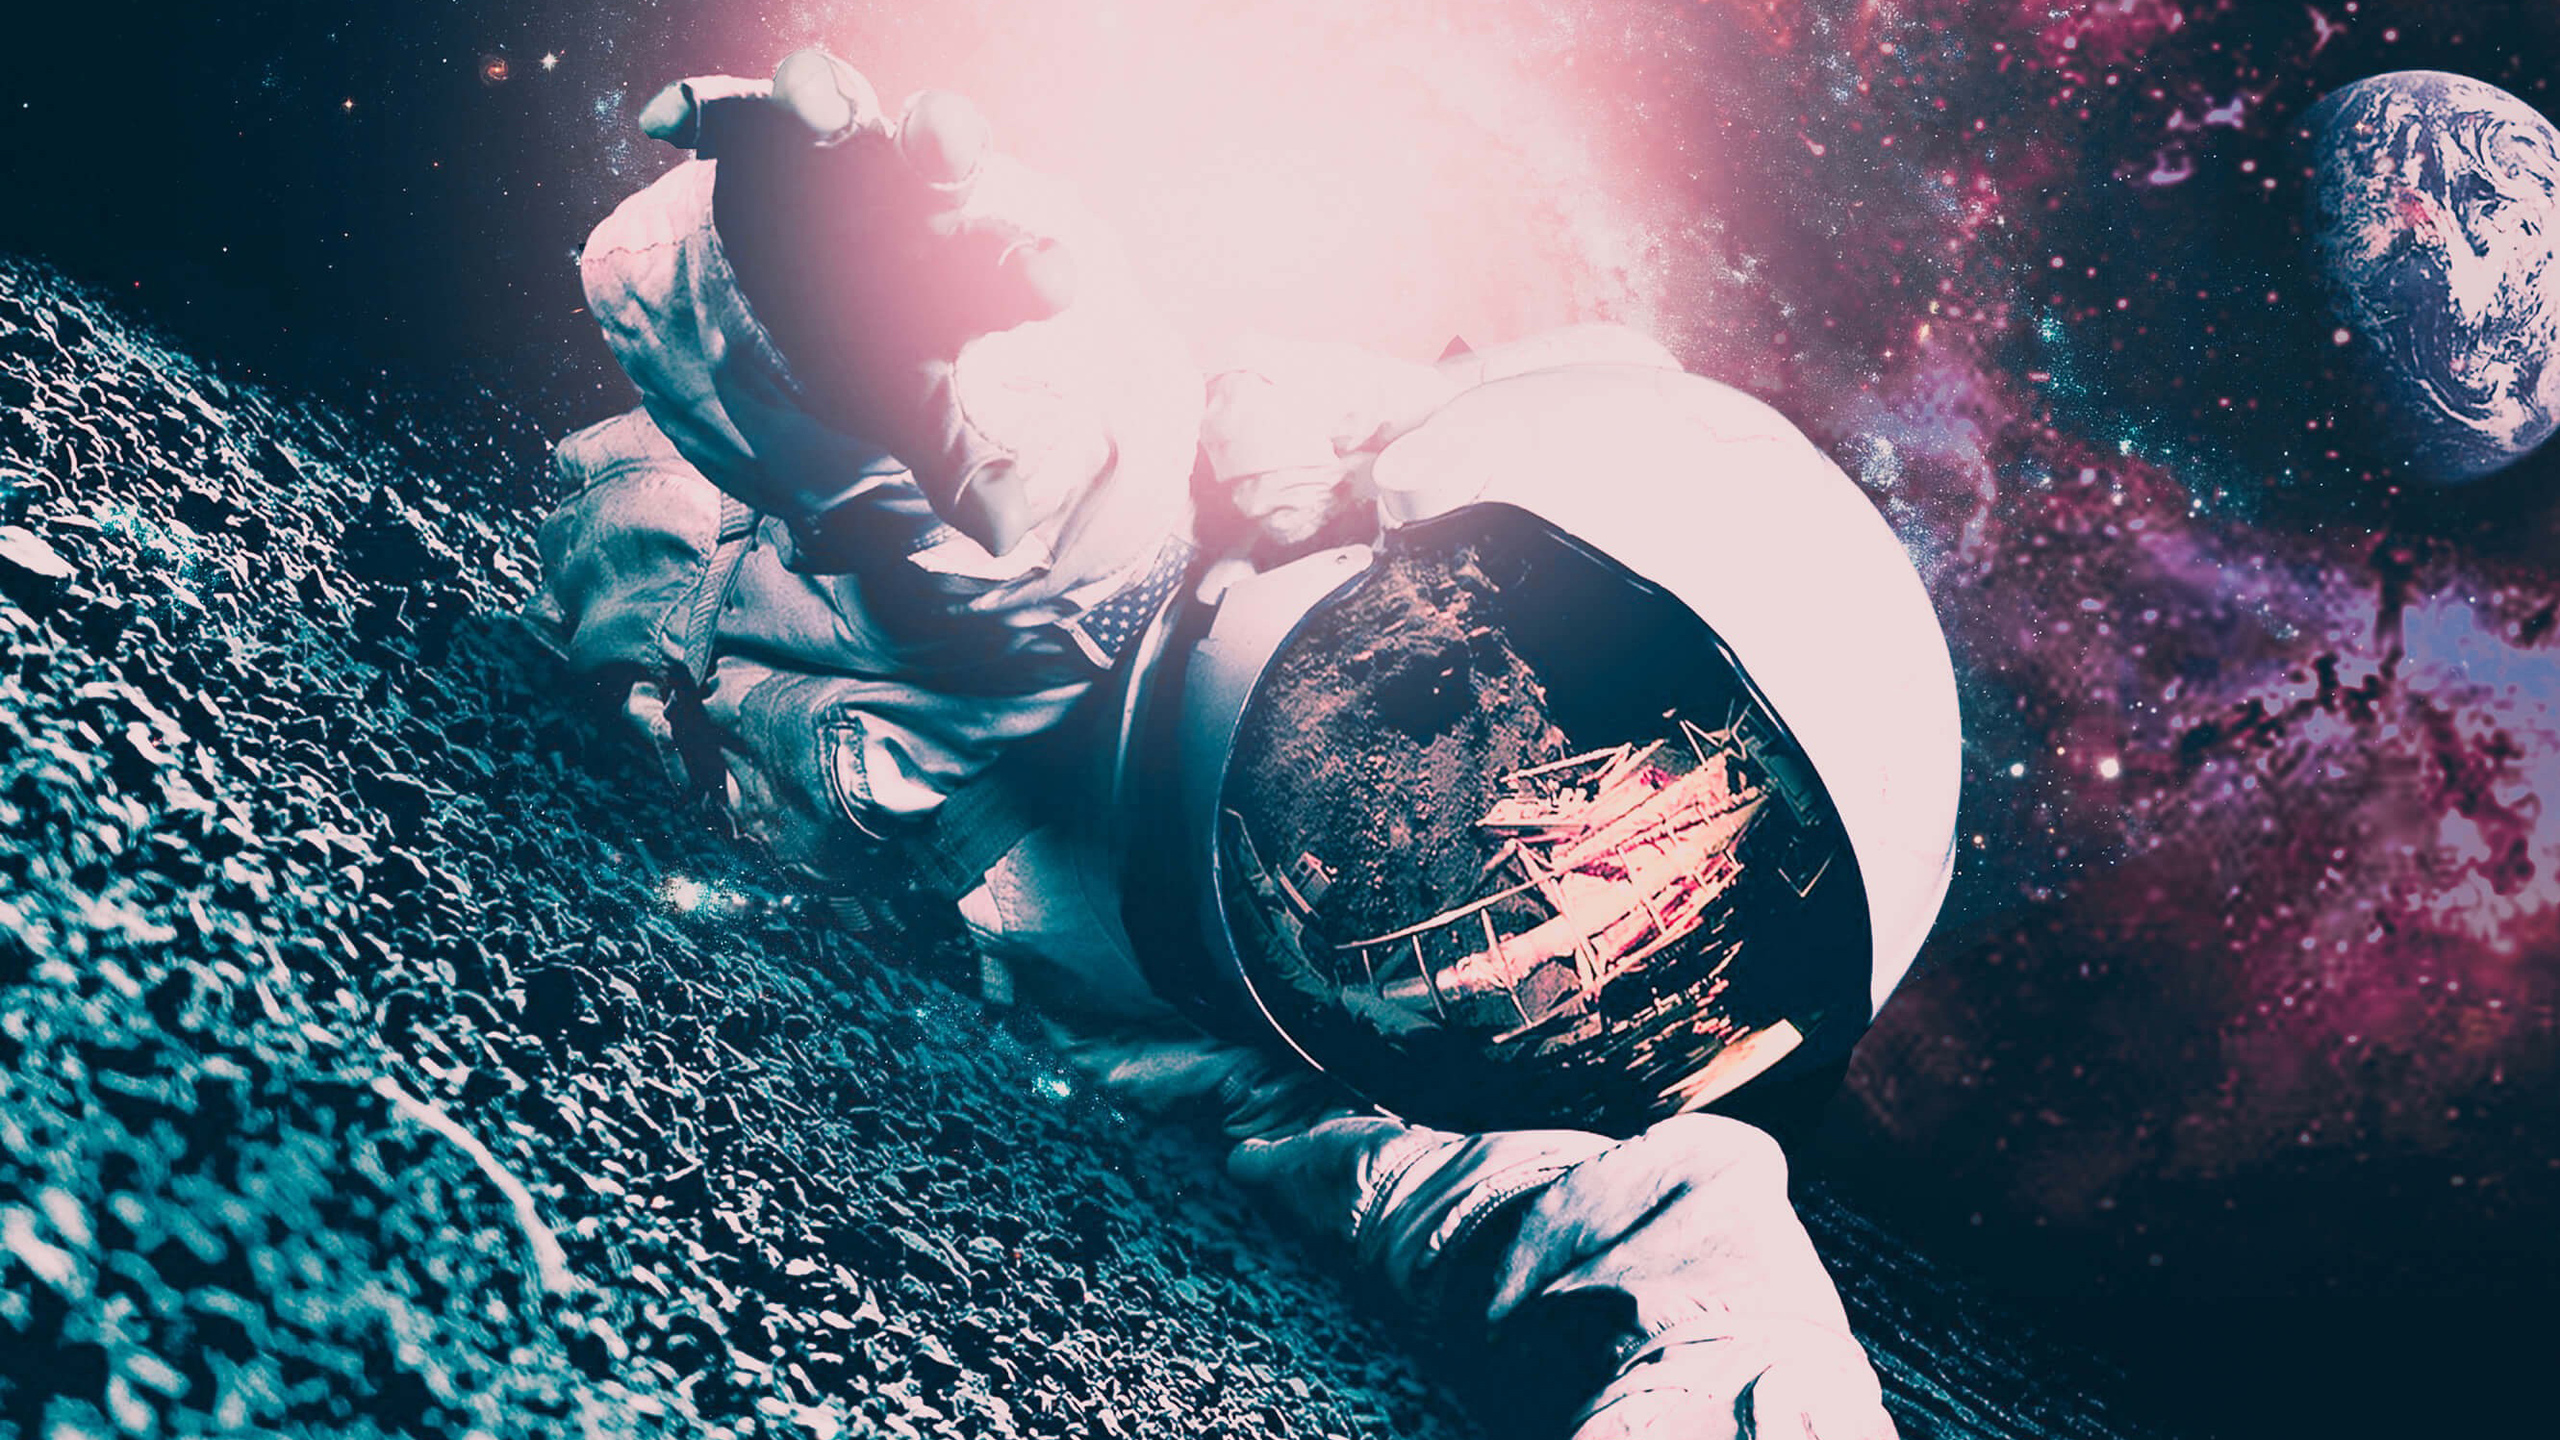 2560x1440 Lost Astronaut 1440p Resolution Hd 4k Wallpapers Images